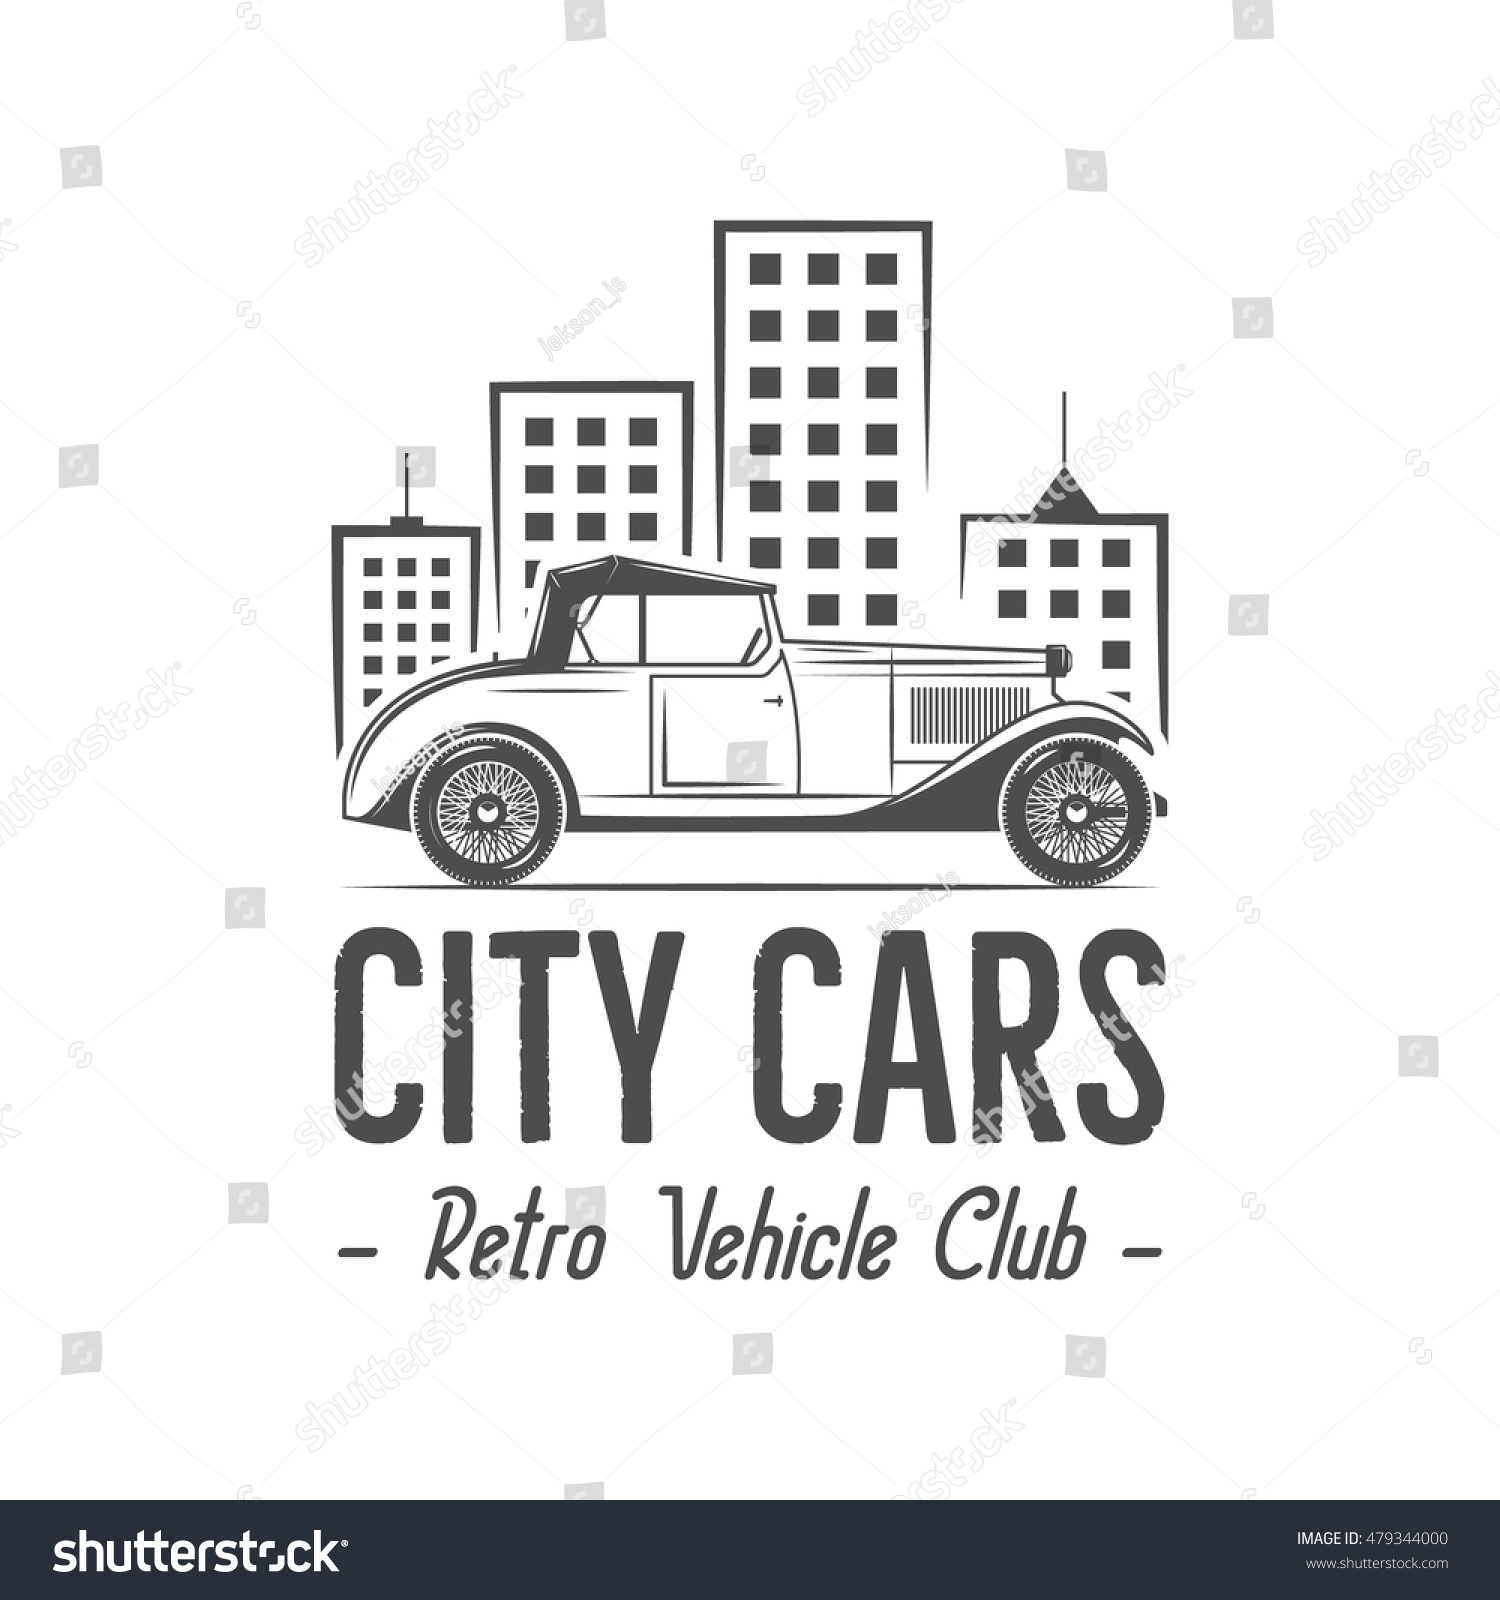 Vintage City Car Label Design Classic Stock Vector (Royalty Free